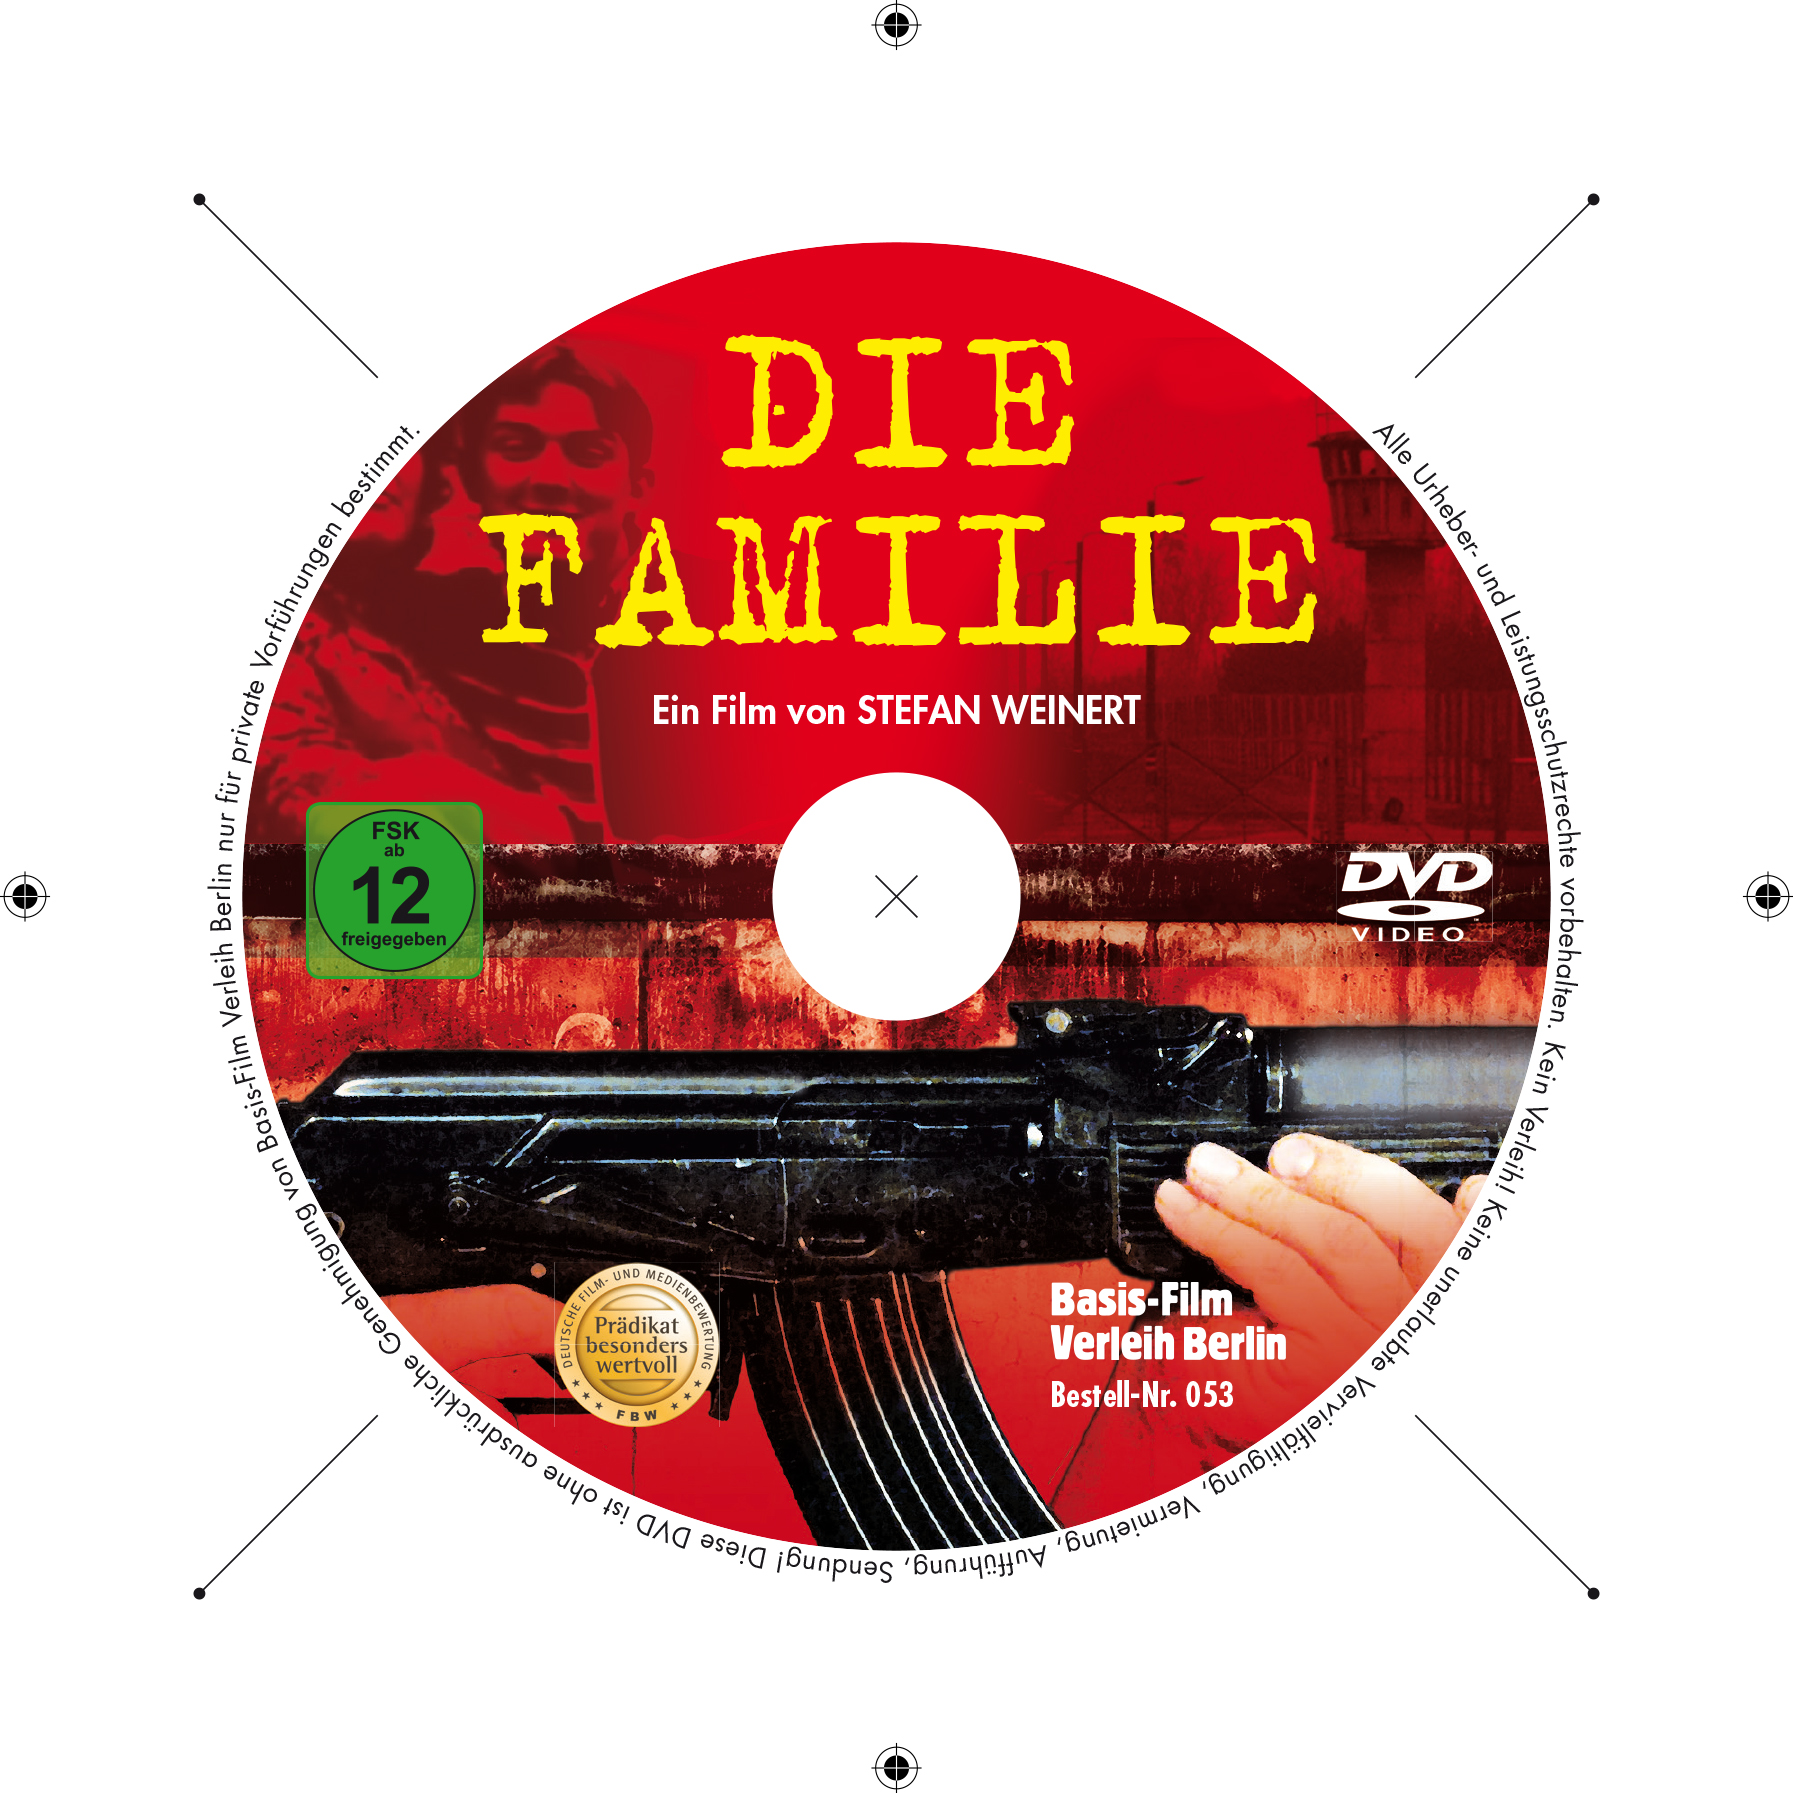 diefamilie DVD label2.indd